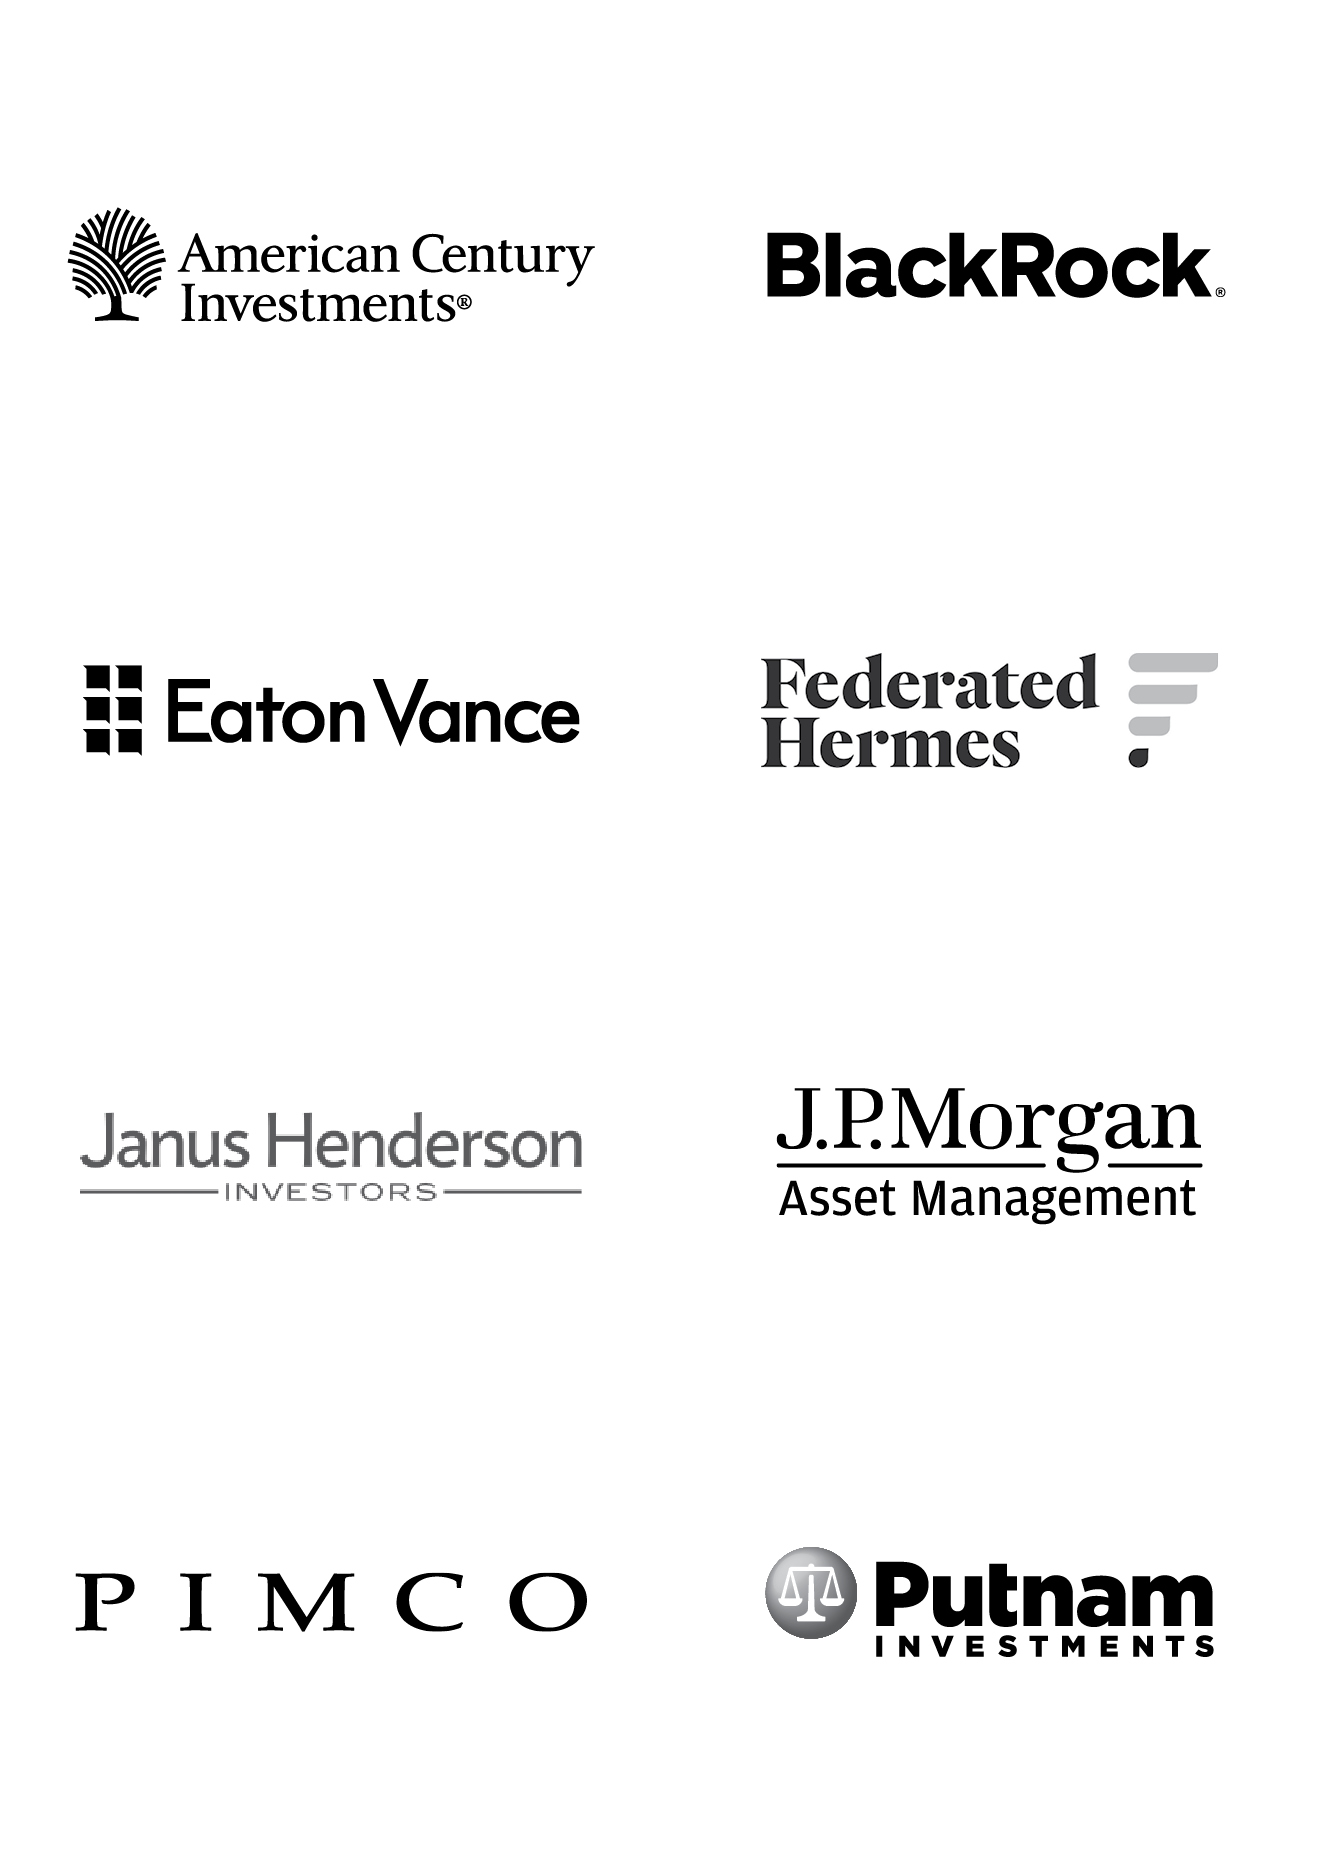 investment manager logos